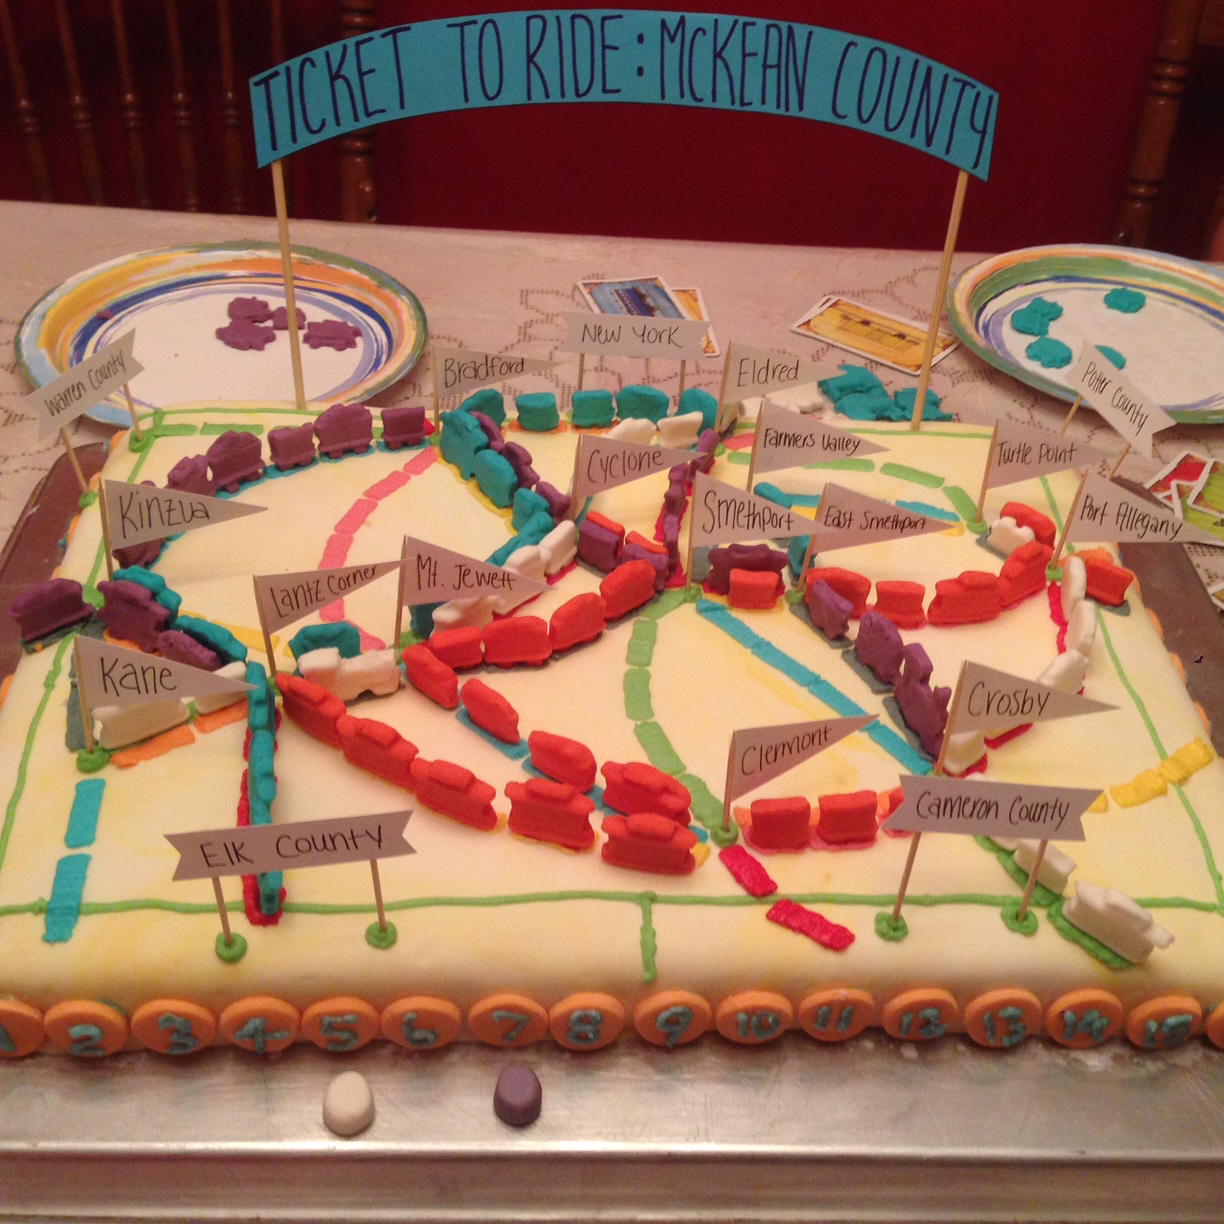 Cake version of Ticket to Ride board game